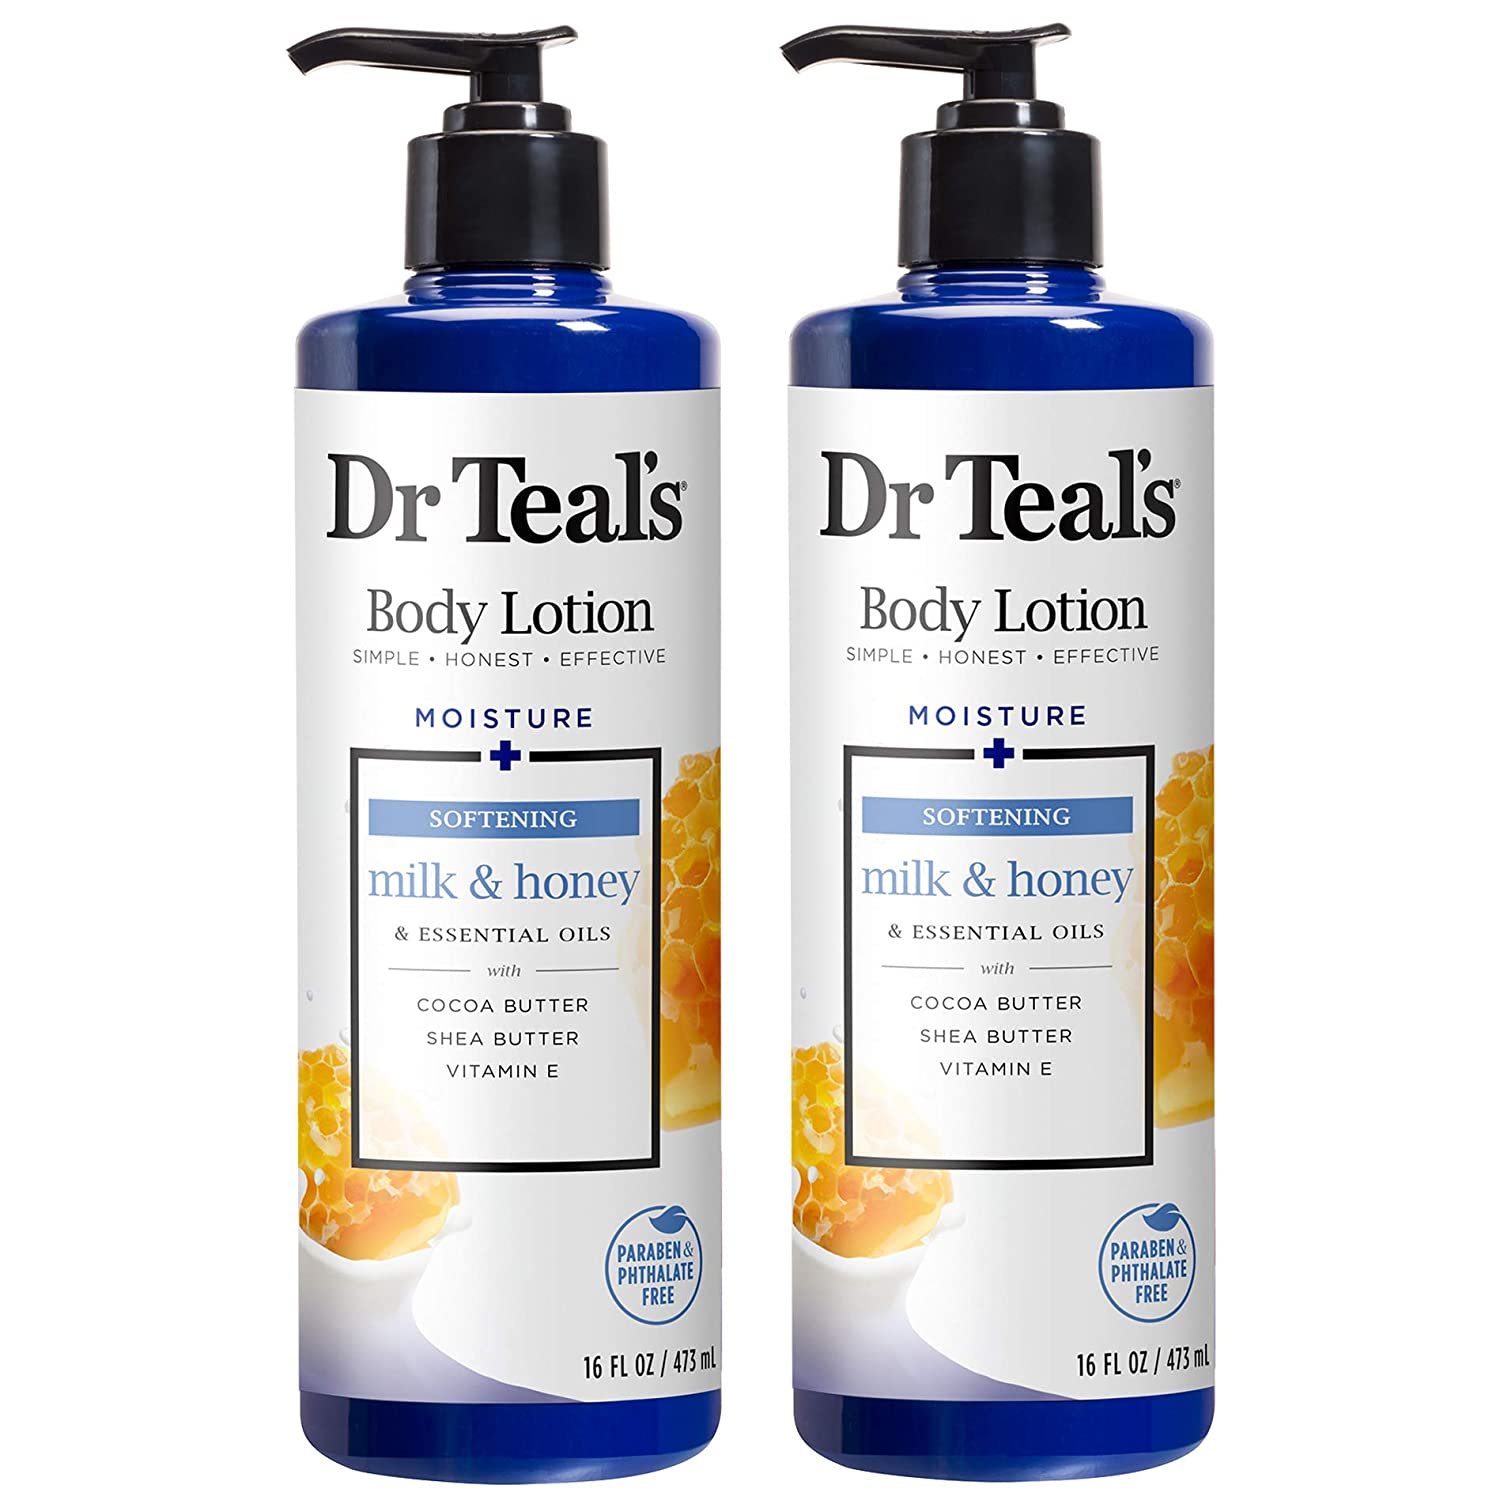 Dr Teal's Body Lotion - Softening Milk & Honey - 16 oz Pack of 2